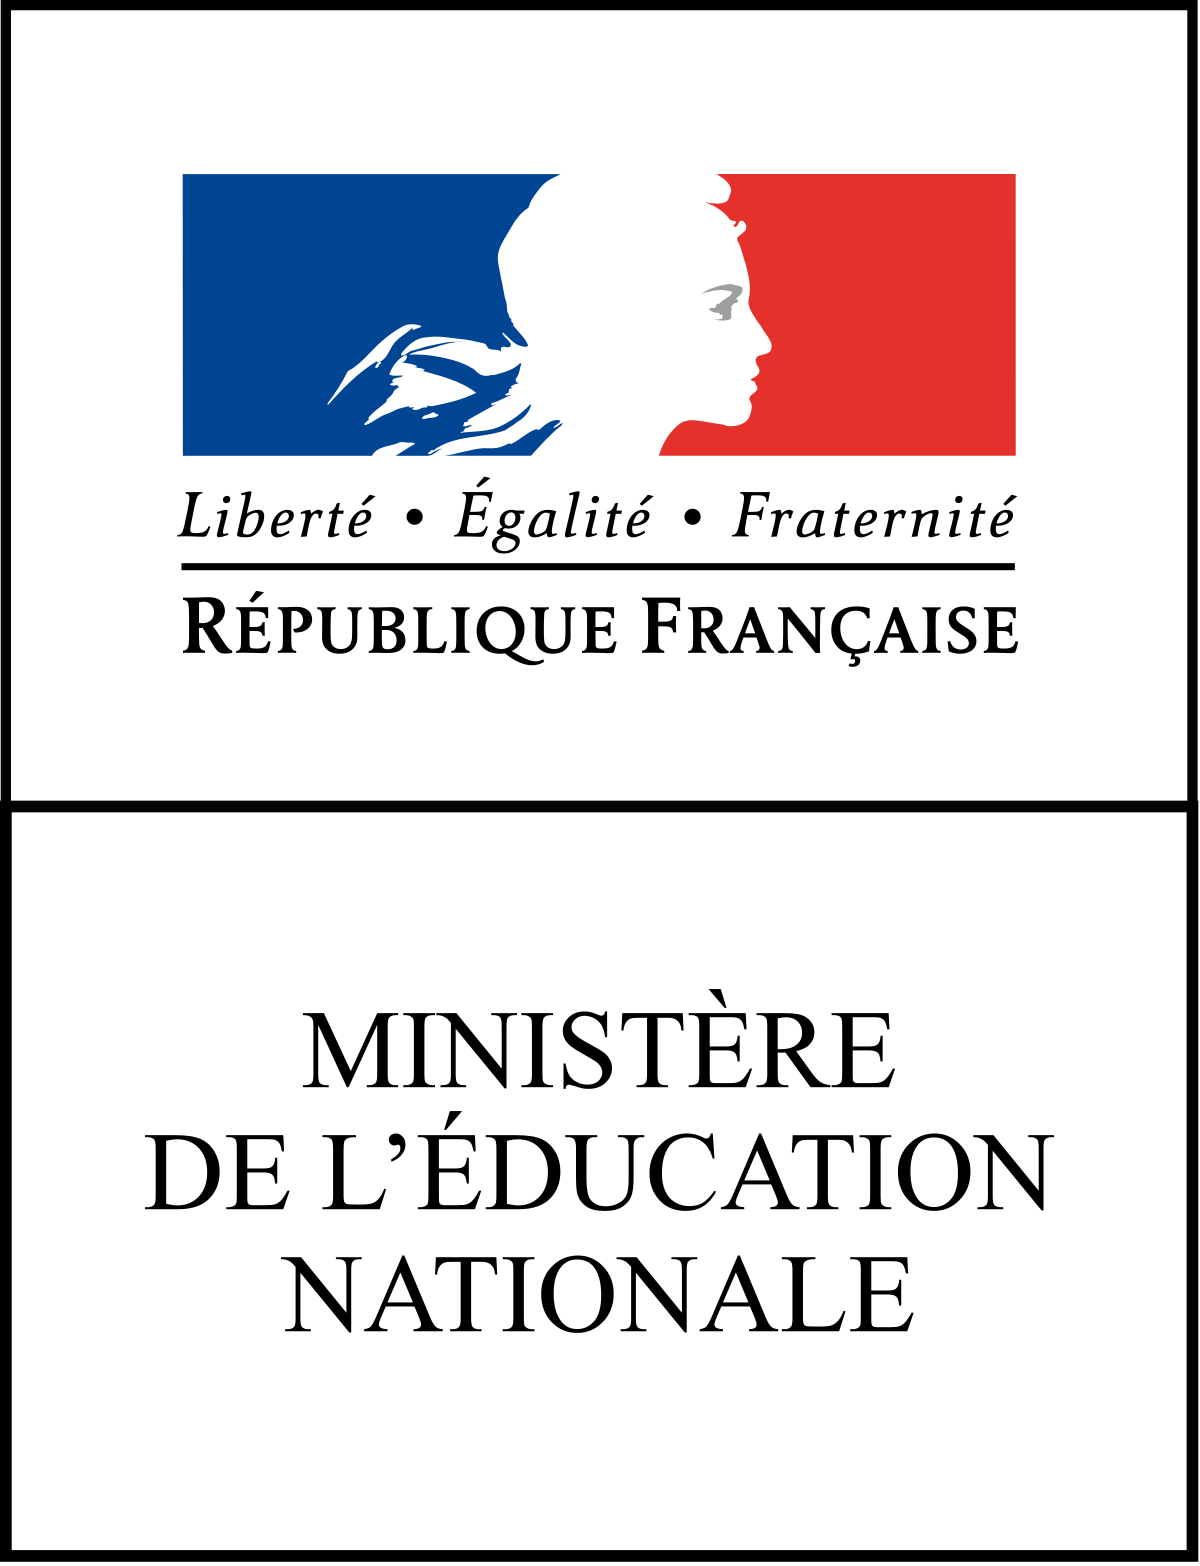 Ministère de l'Education nationale